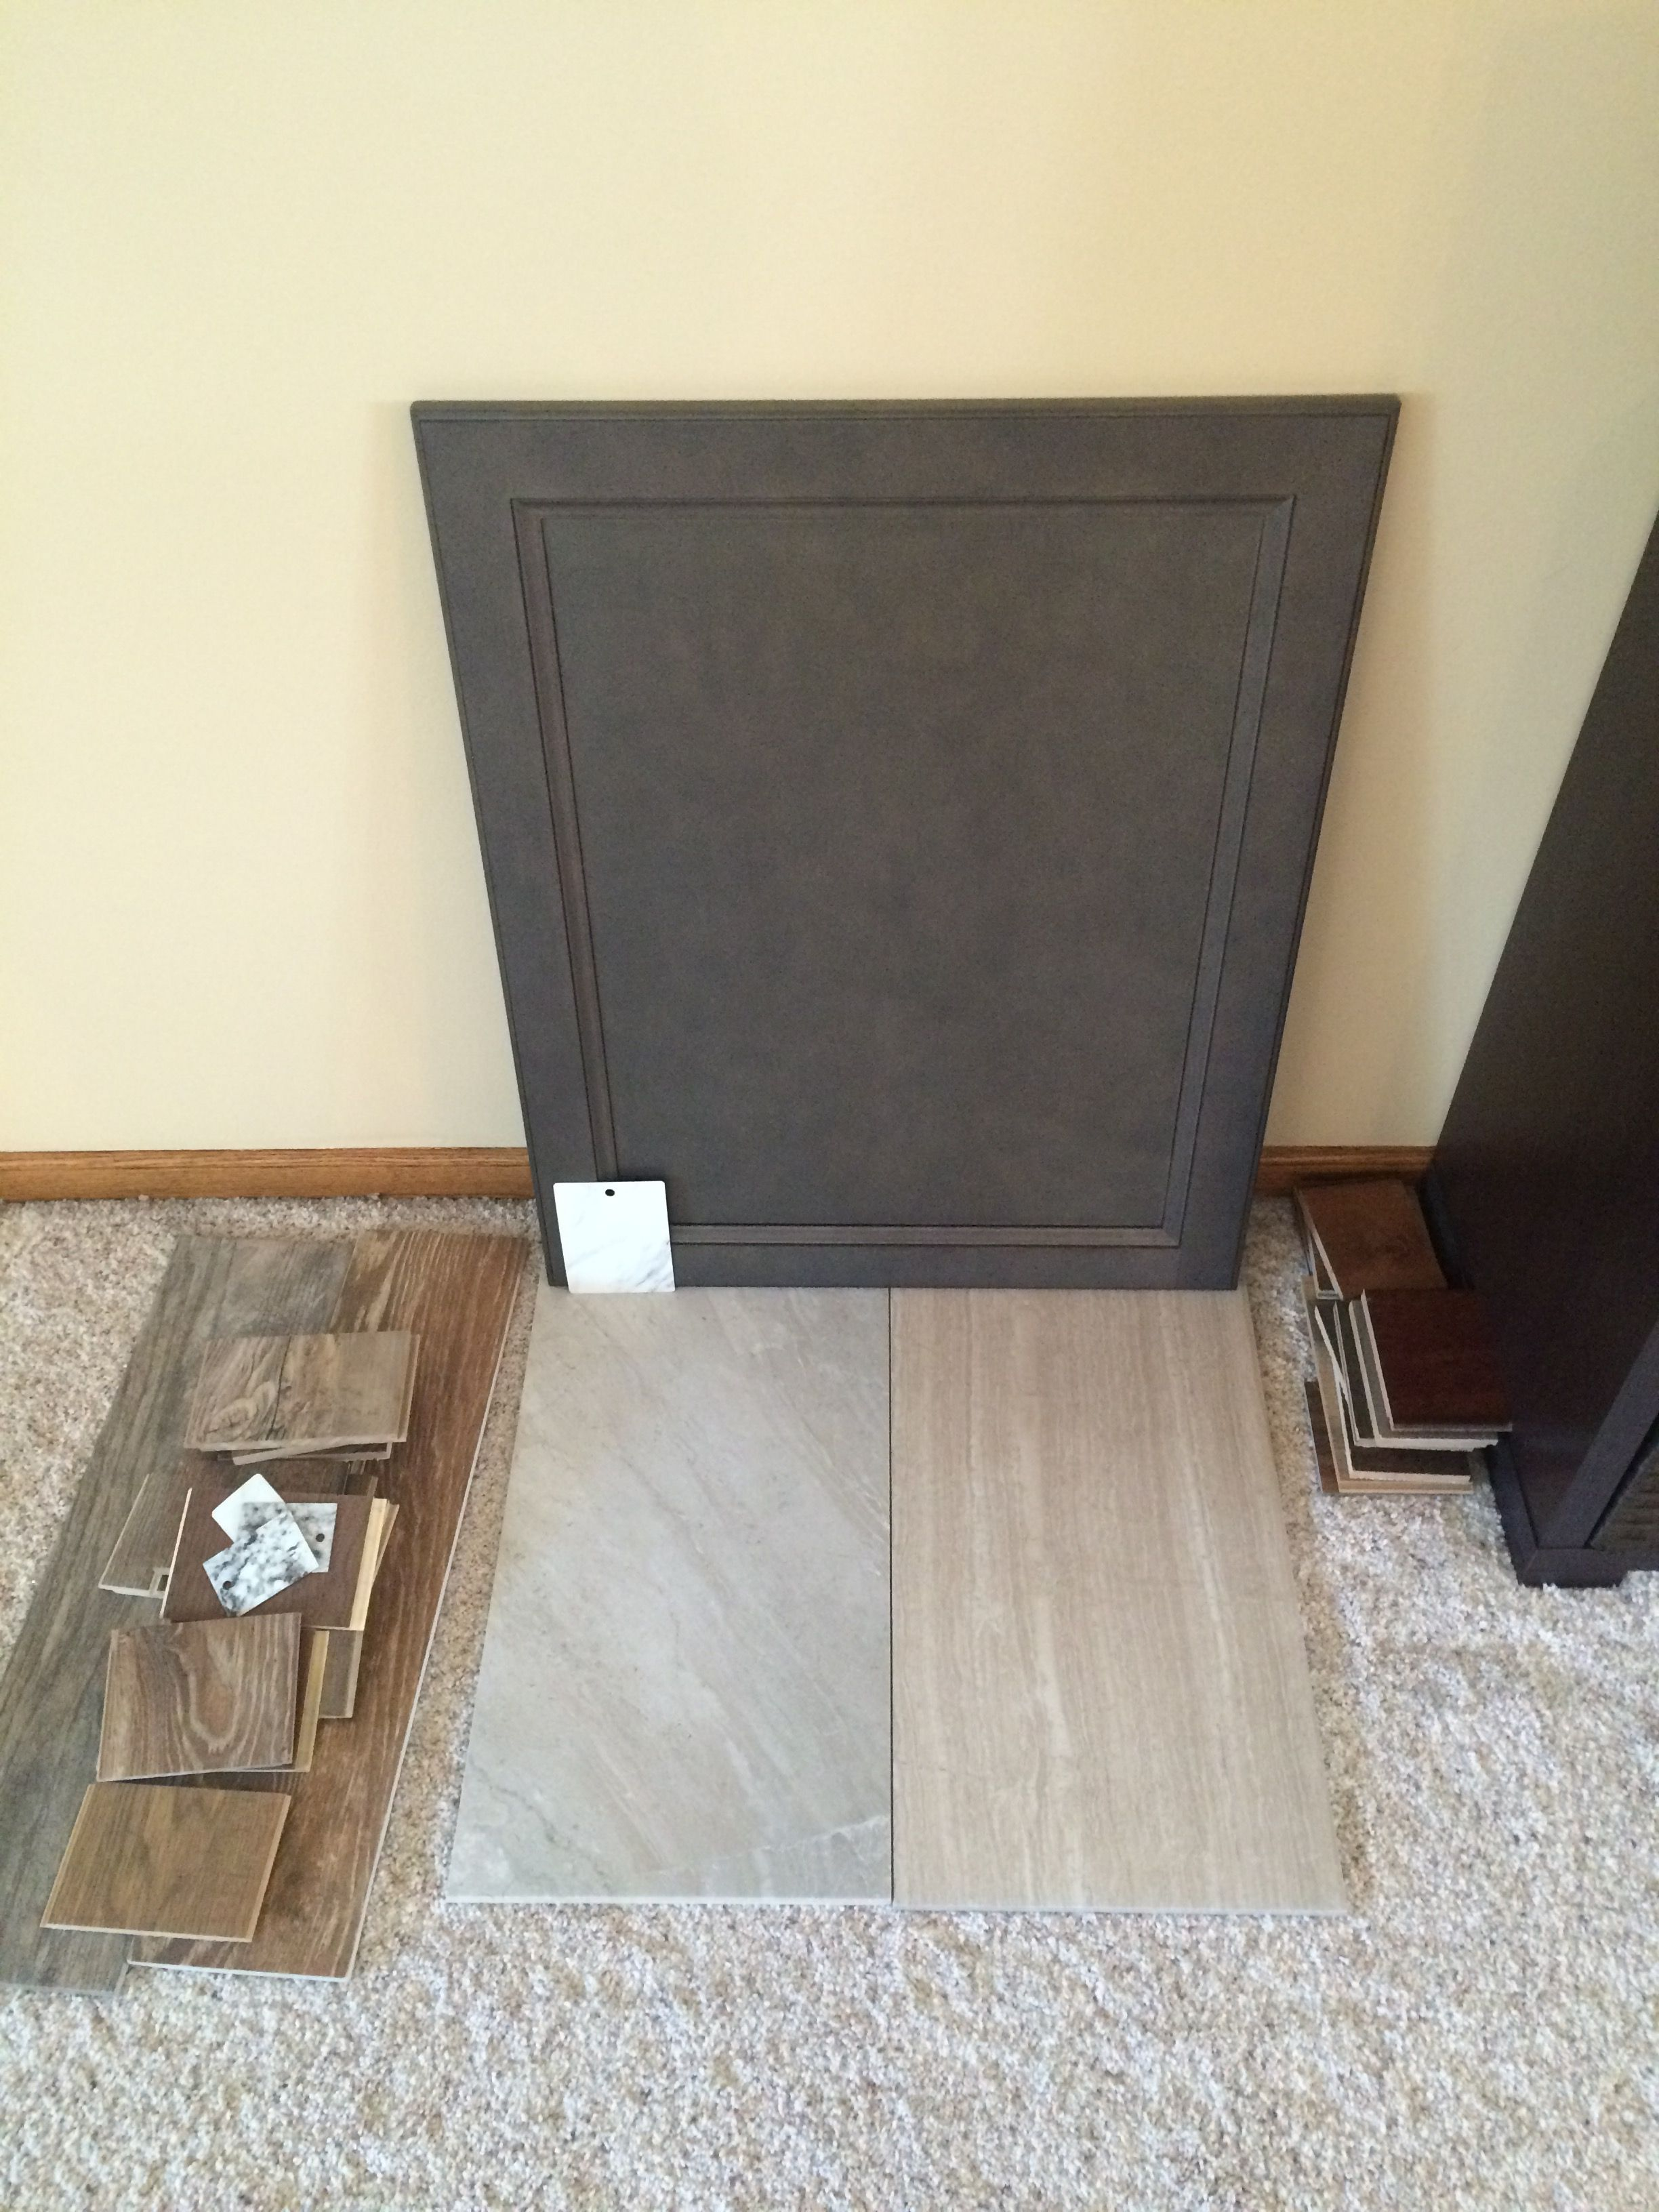 West Point Grey Cabinet And 2 Samples Of 12x24 Tile Grey Cabinets Faircrest Cabinets Grey Kitchen Cabinets